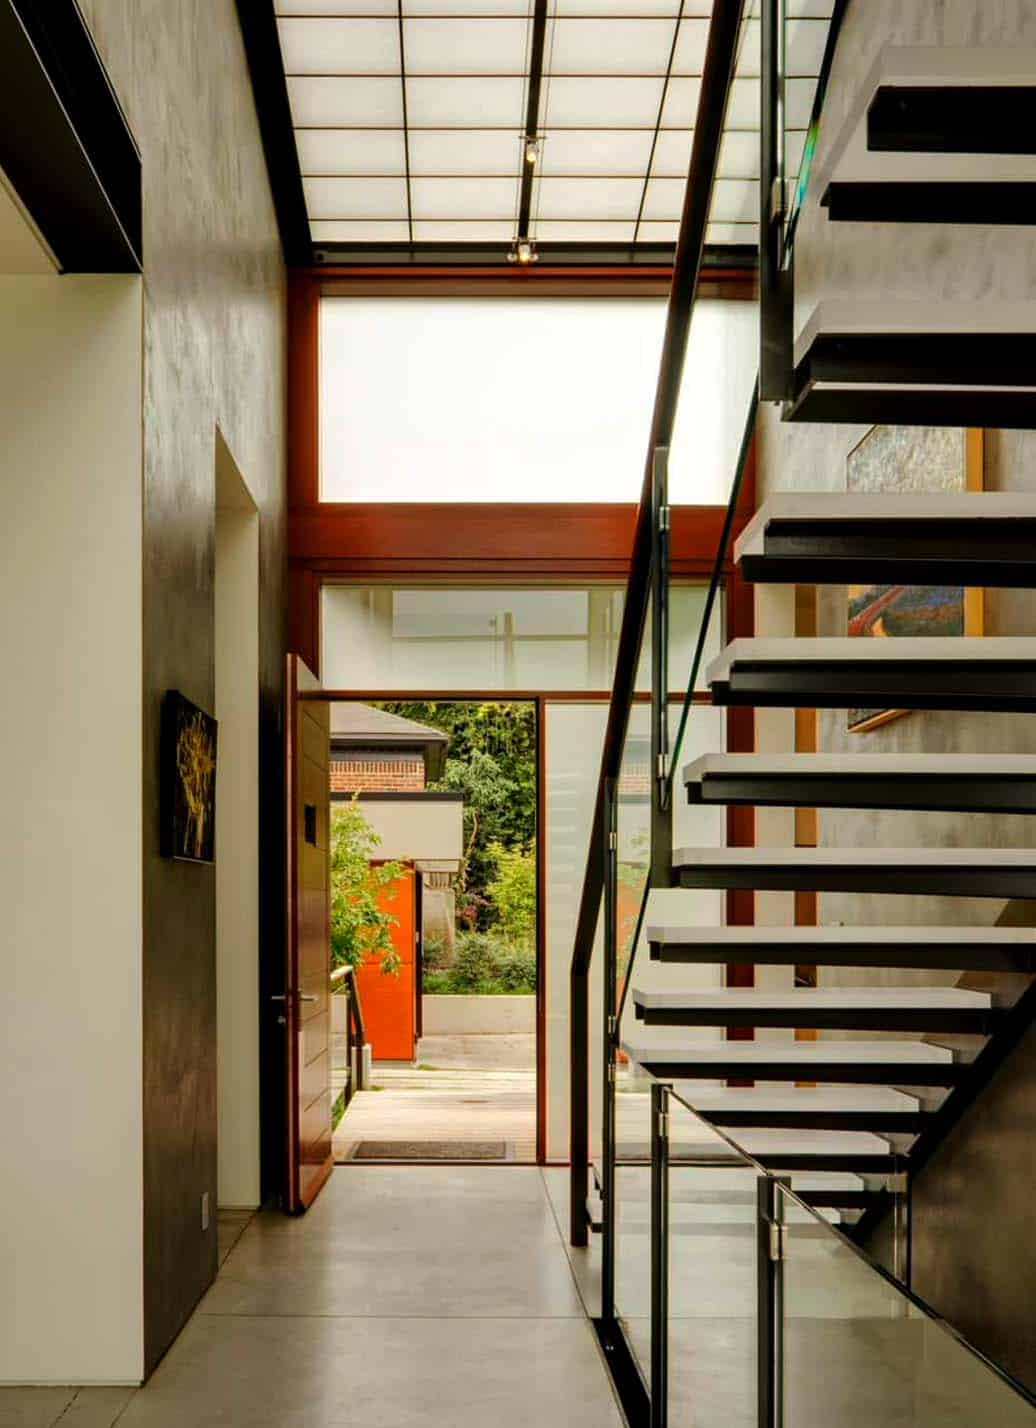 Sustainable Urban Home-Prentiss Balance Wickline Architects-09-1 Kindesign